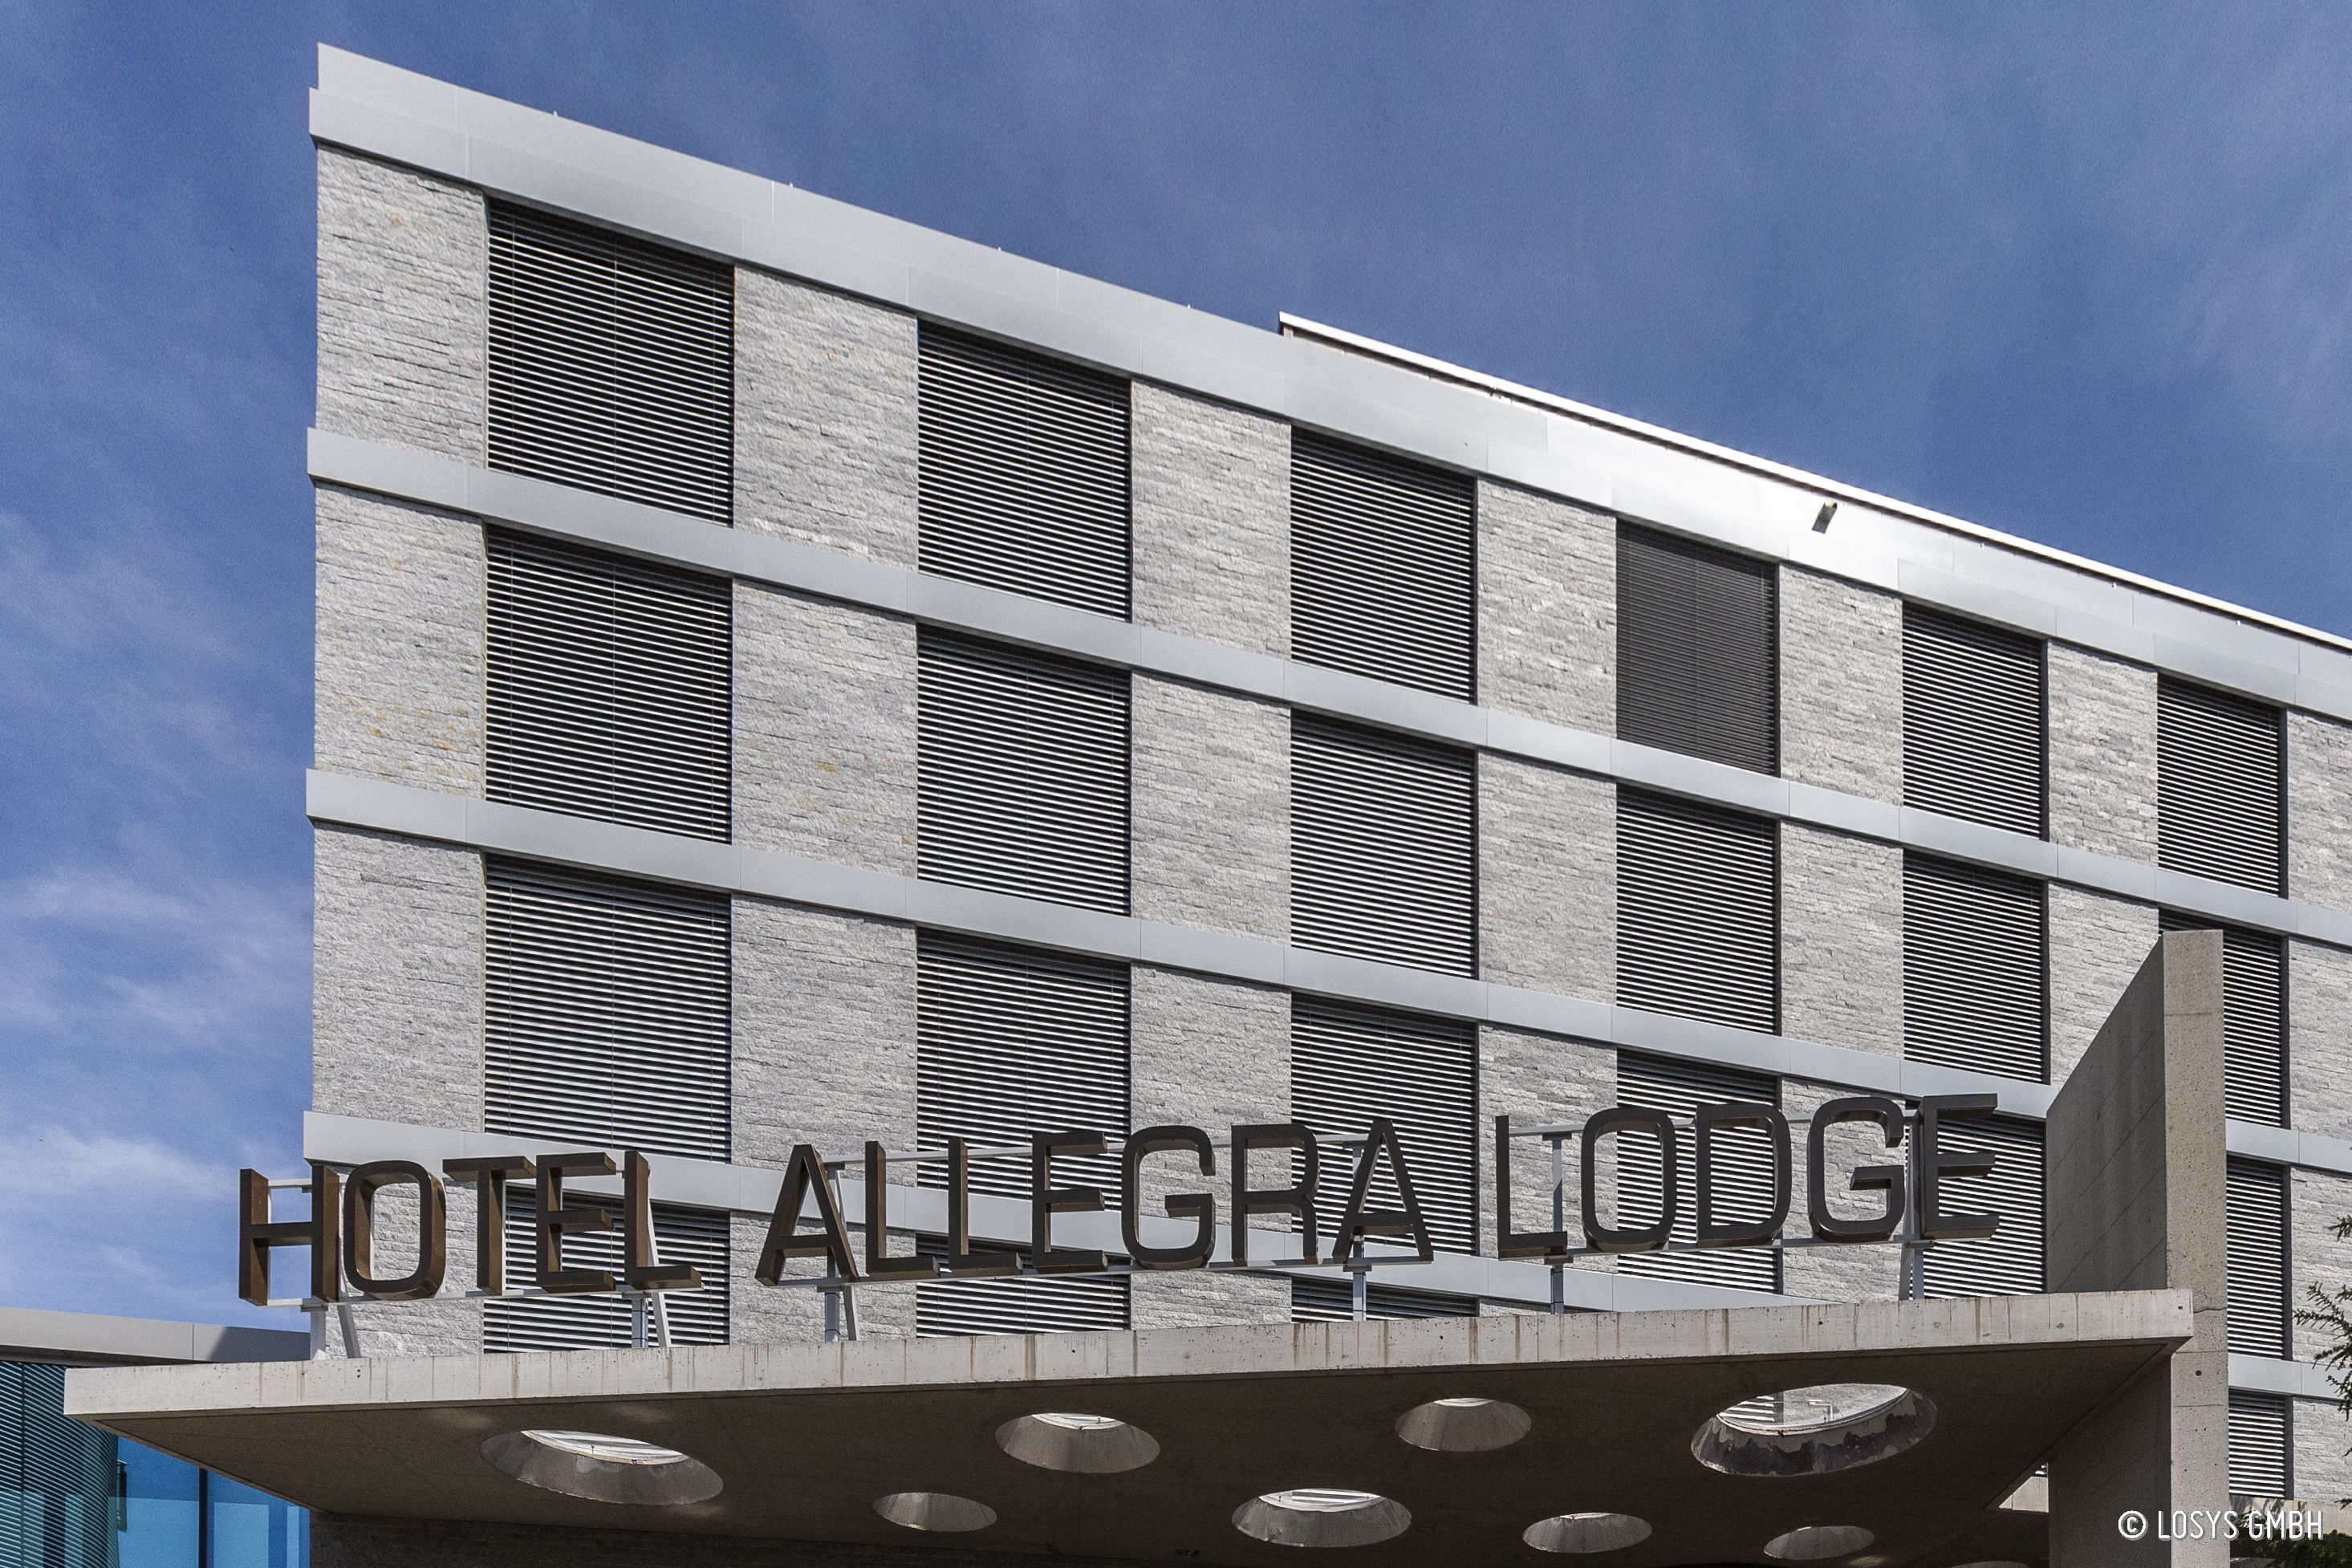 Hotel Allegra Lodge